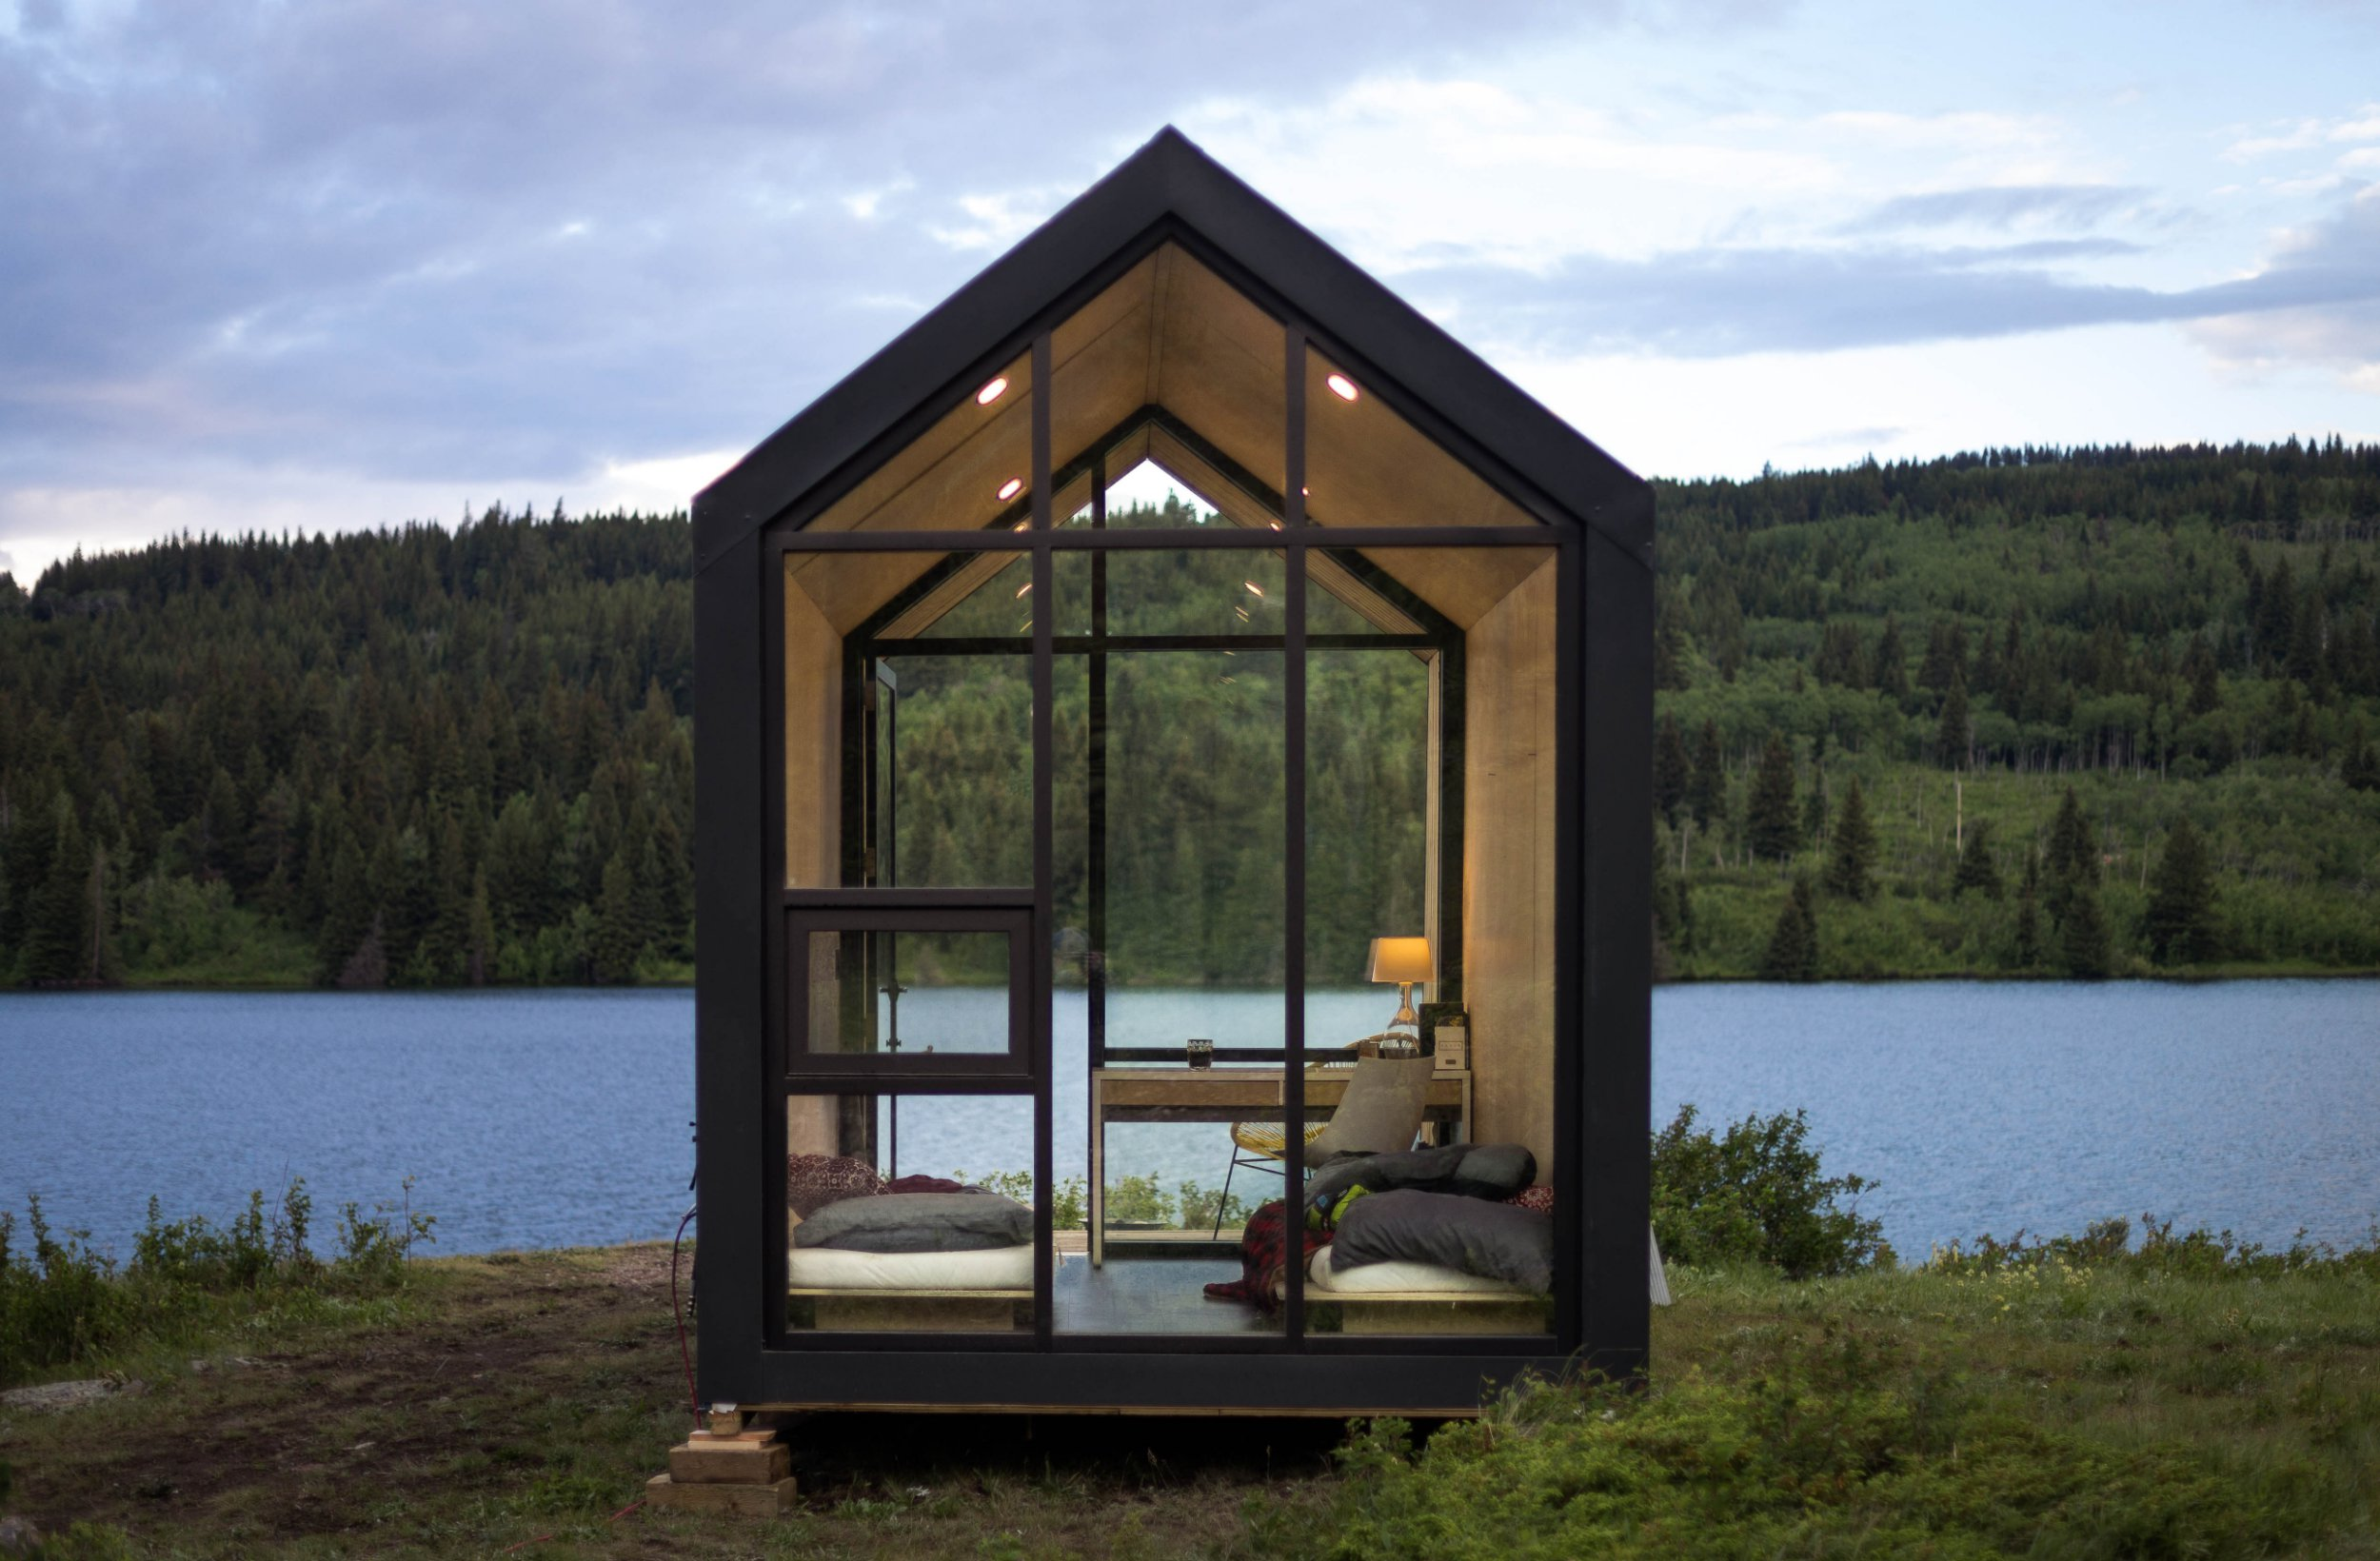 THIS STUNNING ??19k tiny house could be perfect for living off the grid as you can drop it almost anywhere without a permit. Incredible images show the 106-square-foot property in the wilderness with its huge windows allowing perfect views of the surrounding countryside. Other striking shots show the tiny structure illuminated at night, its basic but comfortable interiors and people enjoying a fire on comfortable chairs just outside the house. Aiming to take the guesswork out of the process, DROP Structures has designed a prefab house, called Mono, that can be placed almost anywhere in North America for less than ??19k. Ryan Abernathy / mediadrumimages.com